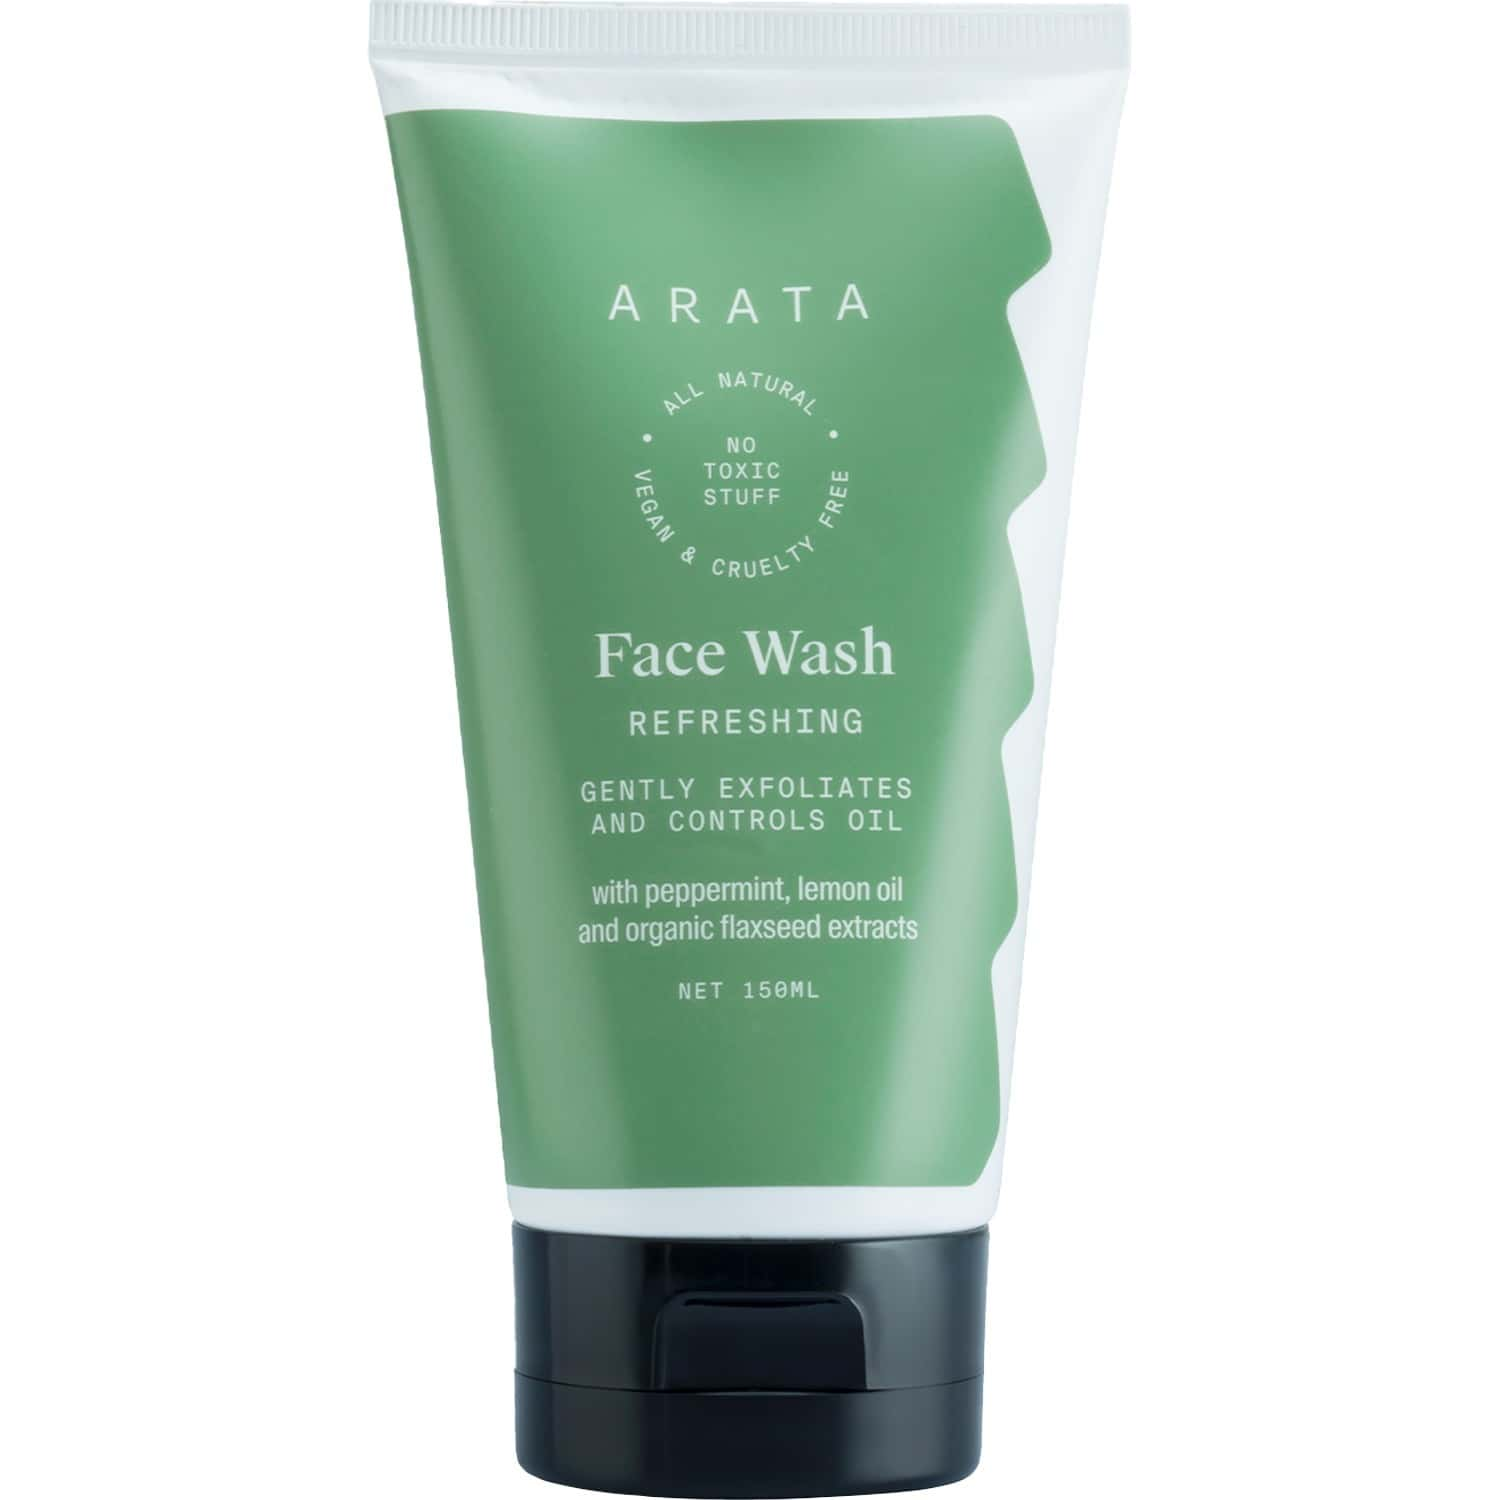 Arata Natural Refreshing Face Wash With Peppermint, Lemon Oil & Organic Flaxseed    All-natural, Vegan & Cruelty-free    Gently Exfoliates & Controls Oil For Women & Men - (150 Ml)